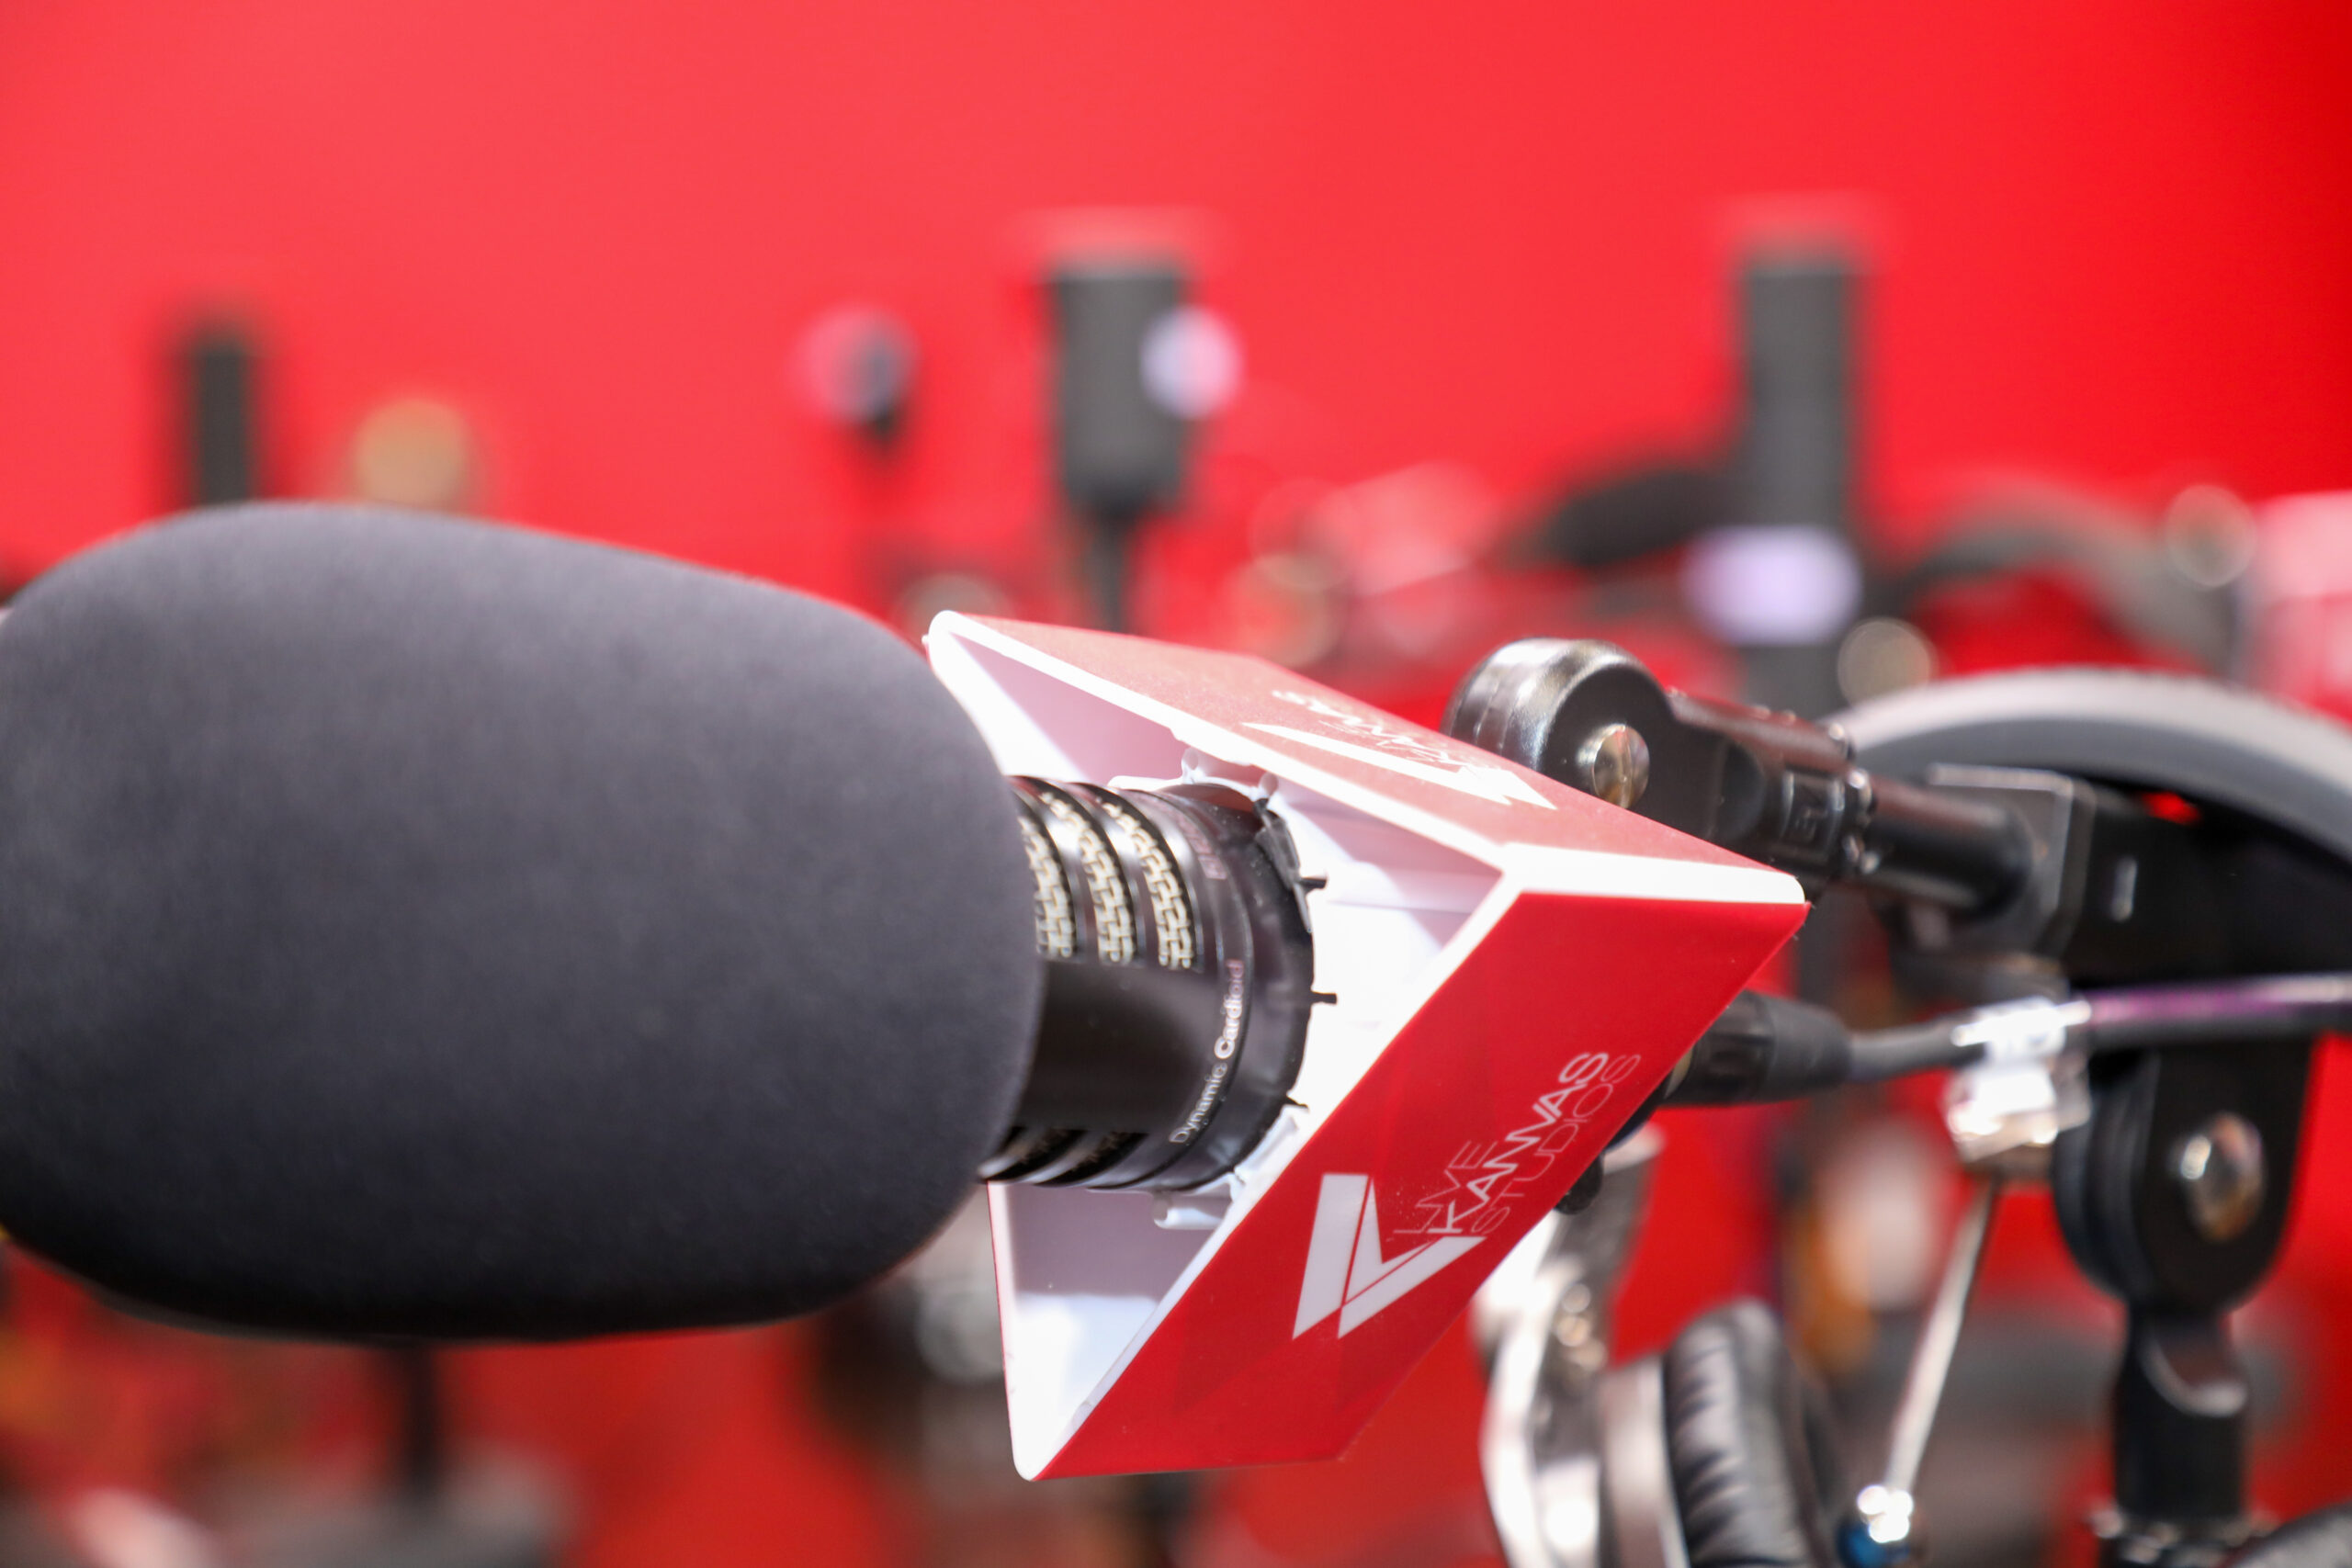 Close up of podcast recording microphone